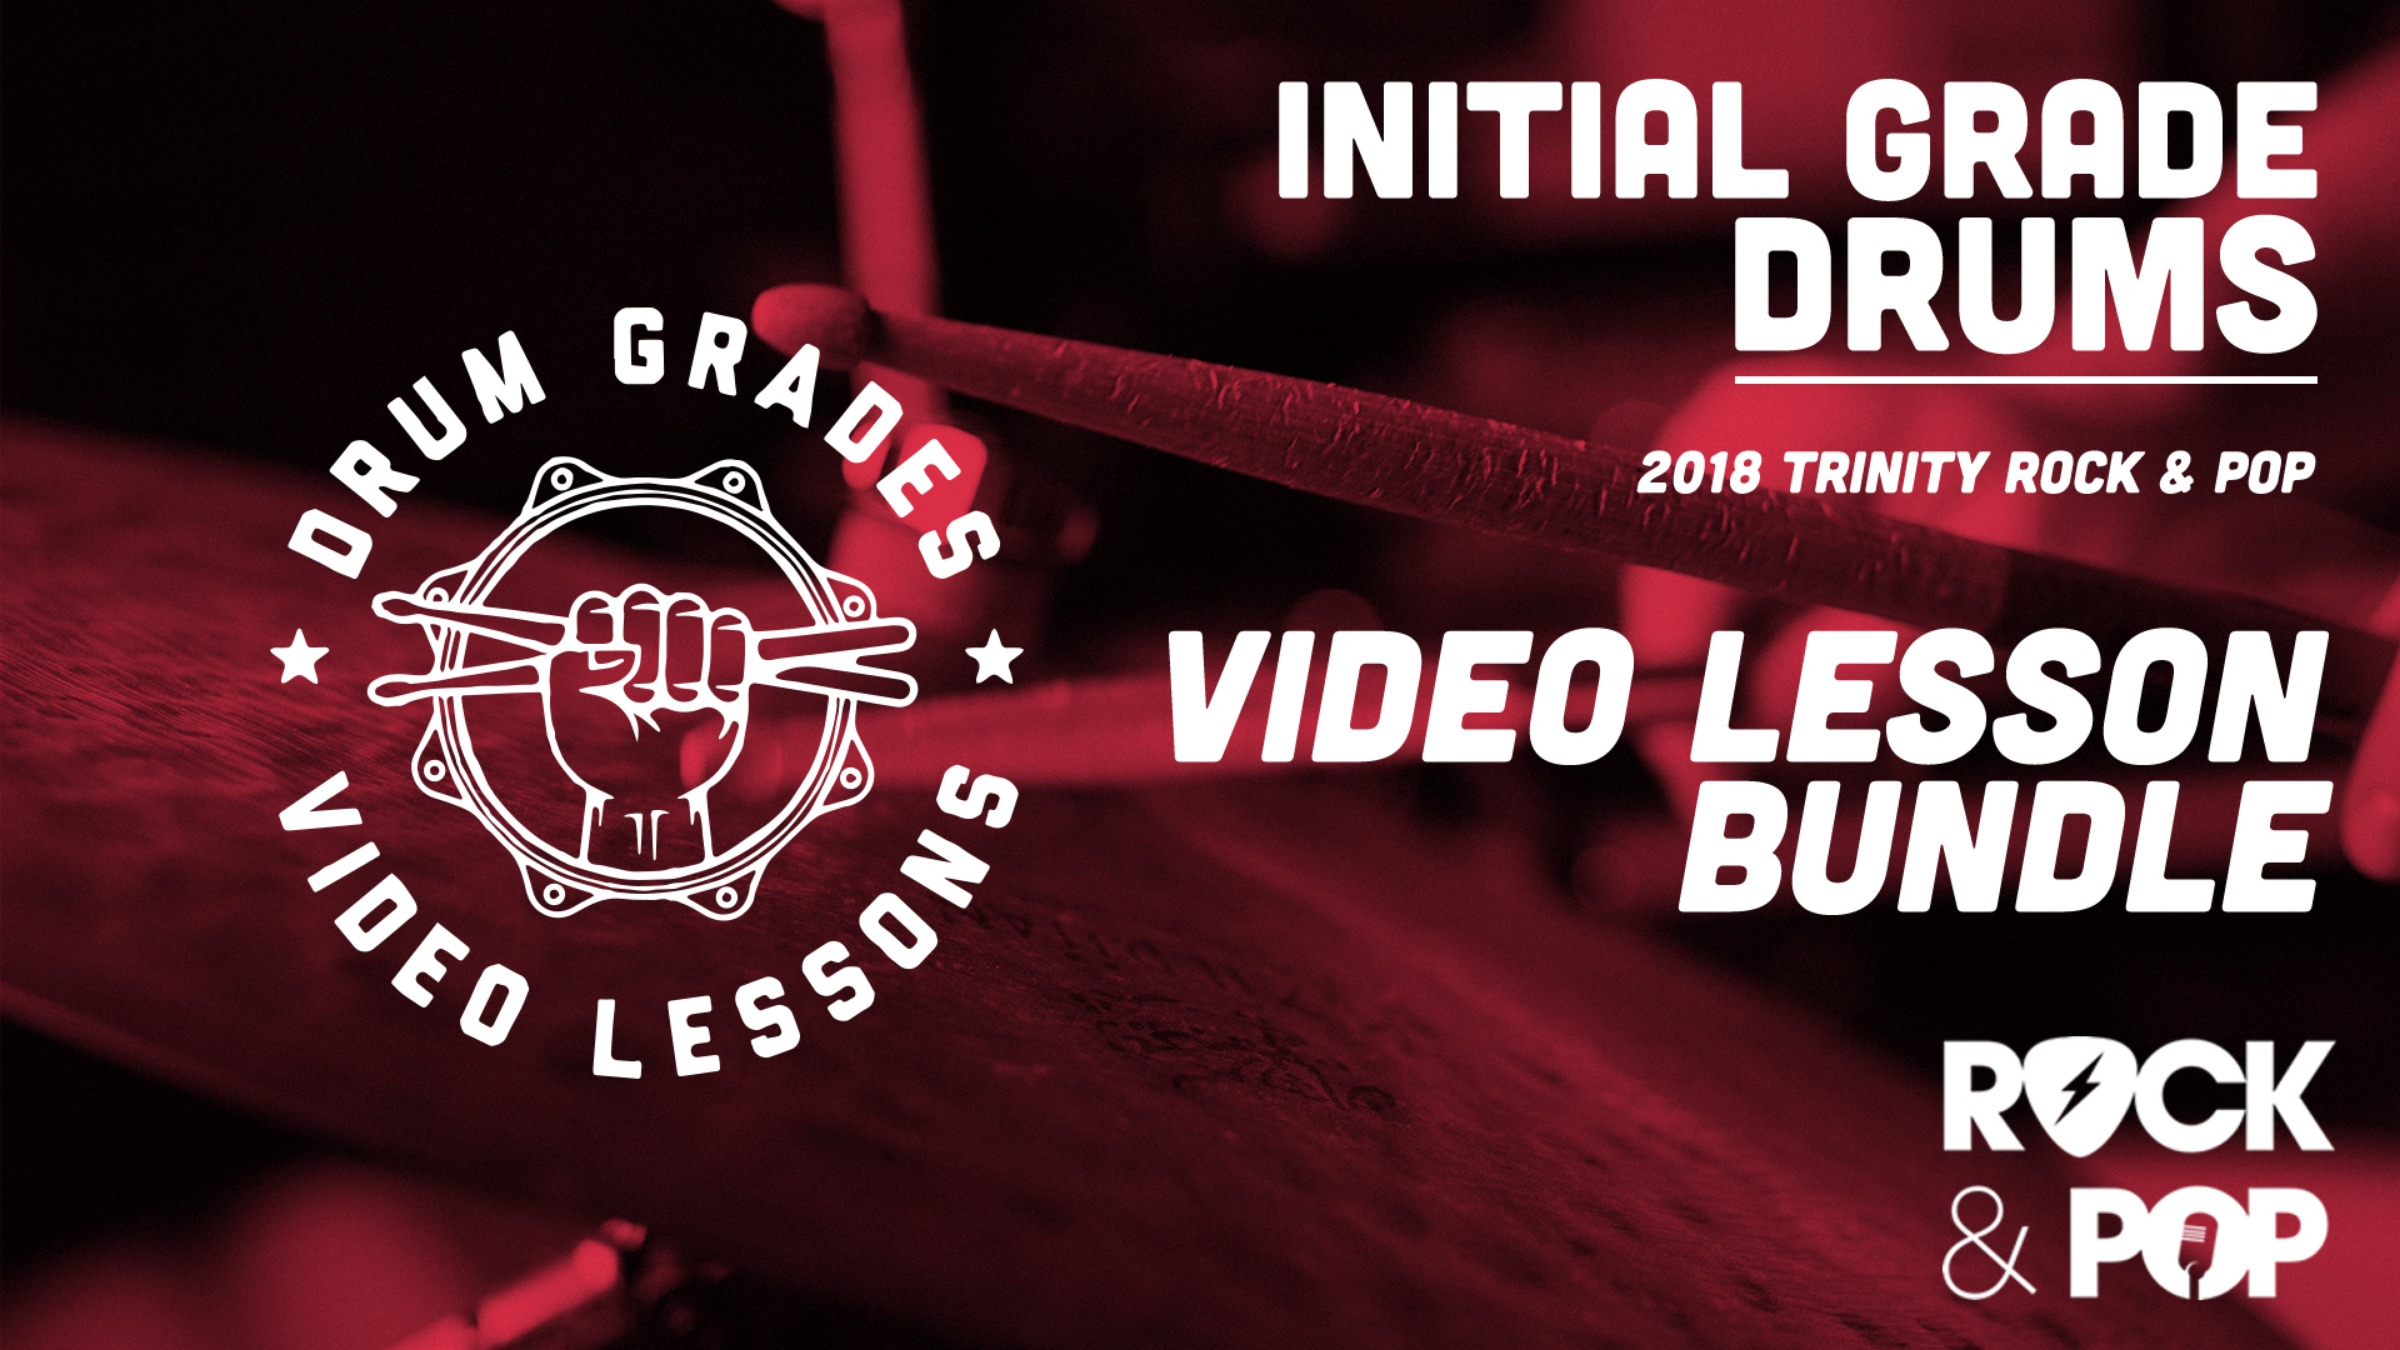 Initial Grade - Video Lesson Bundle